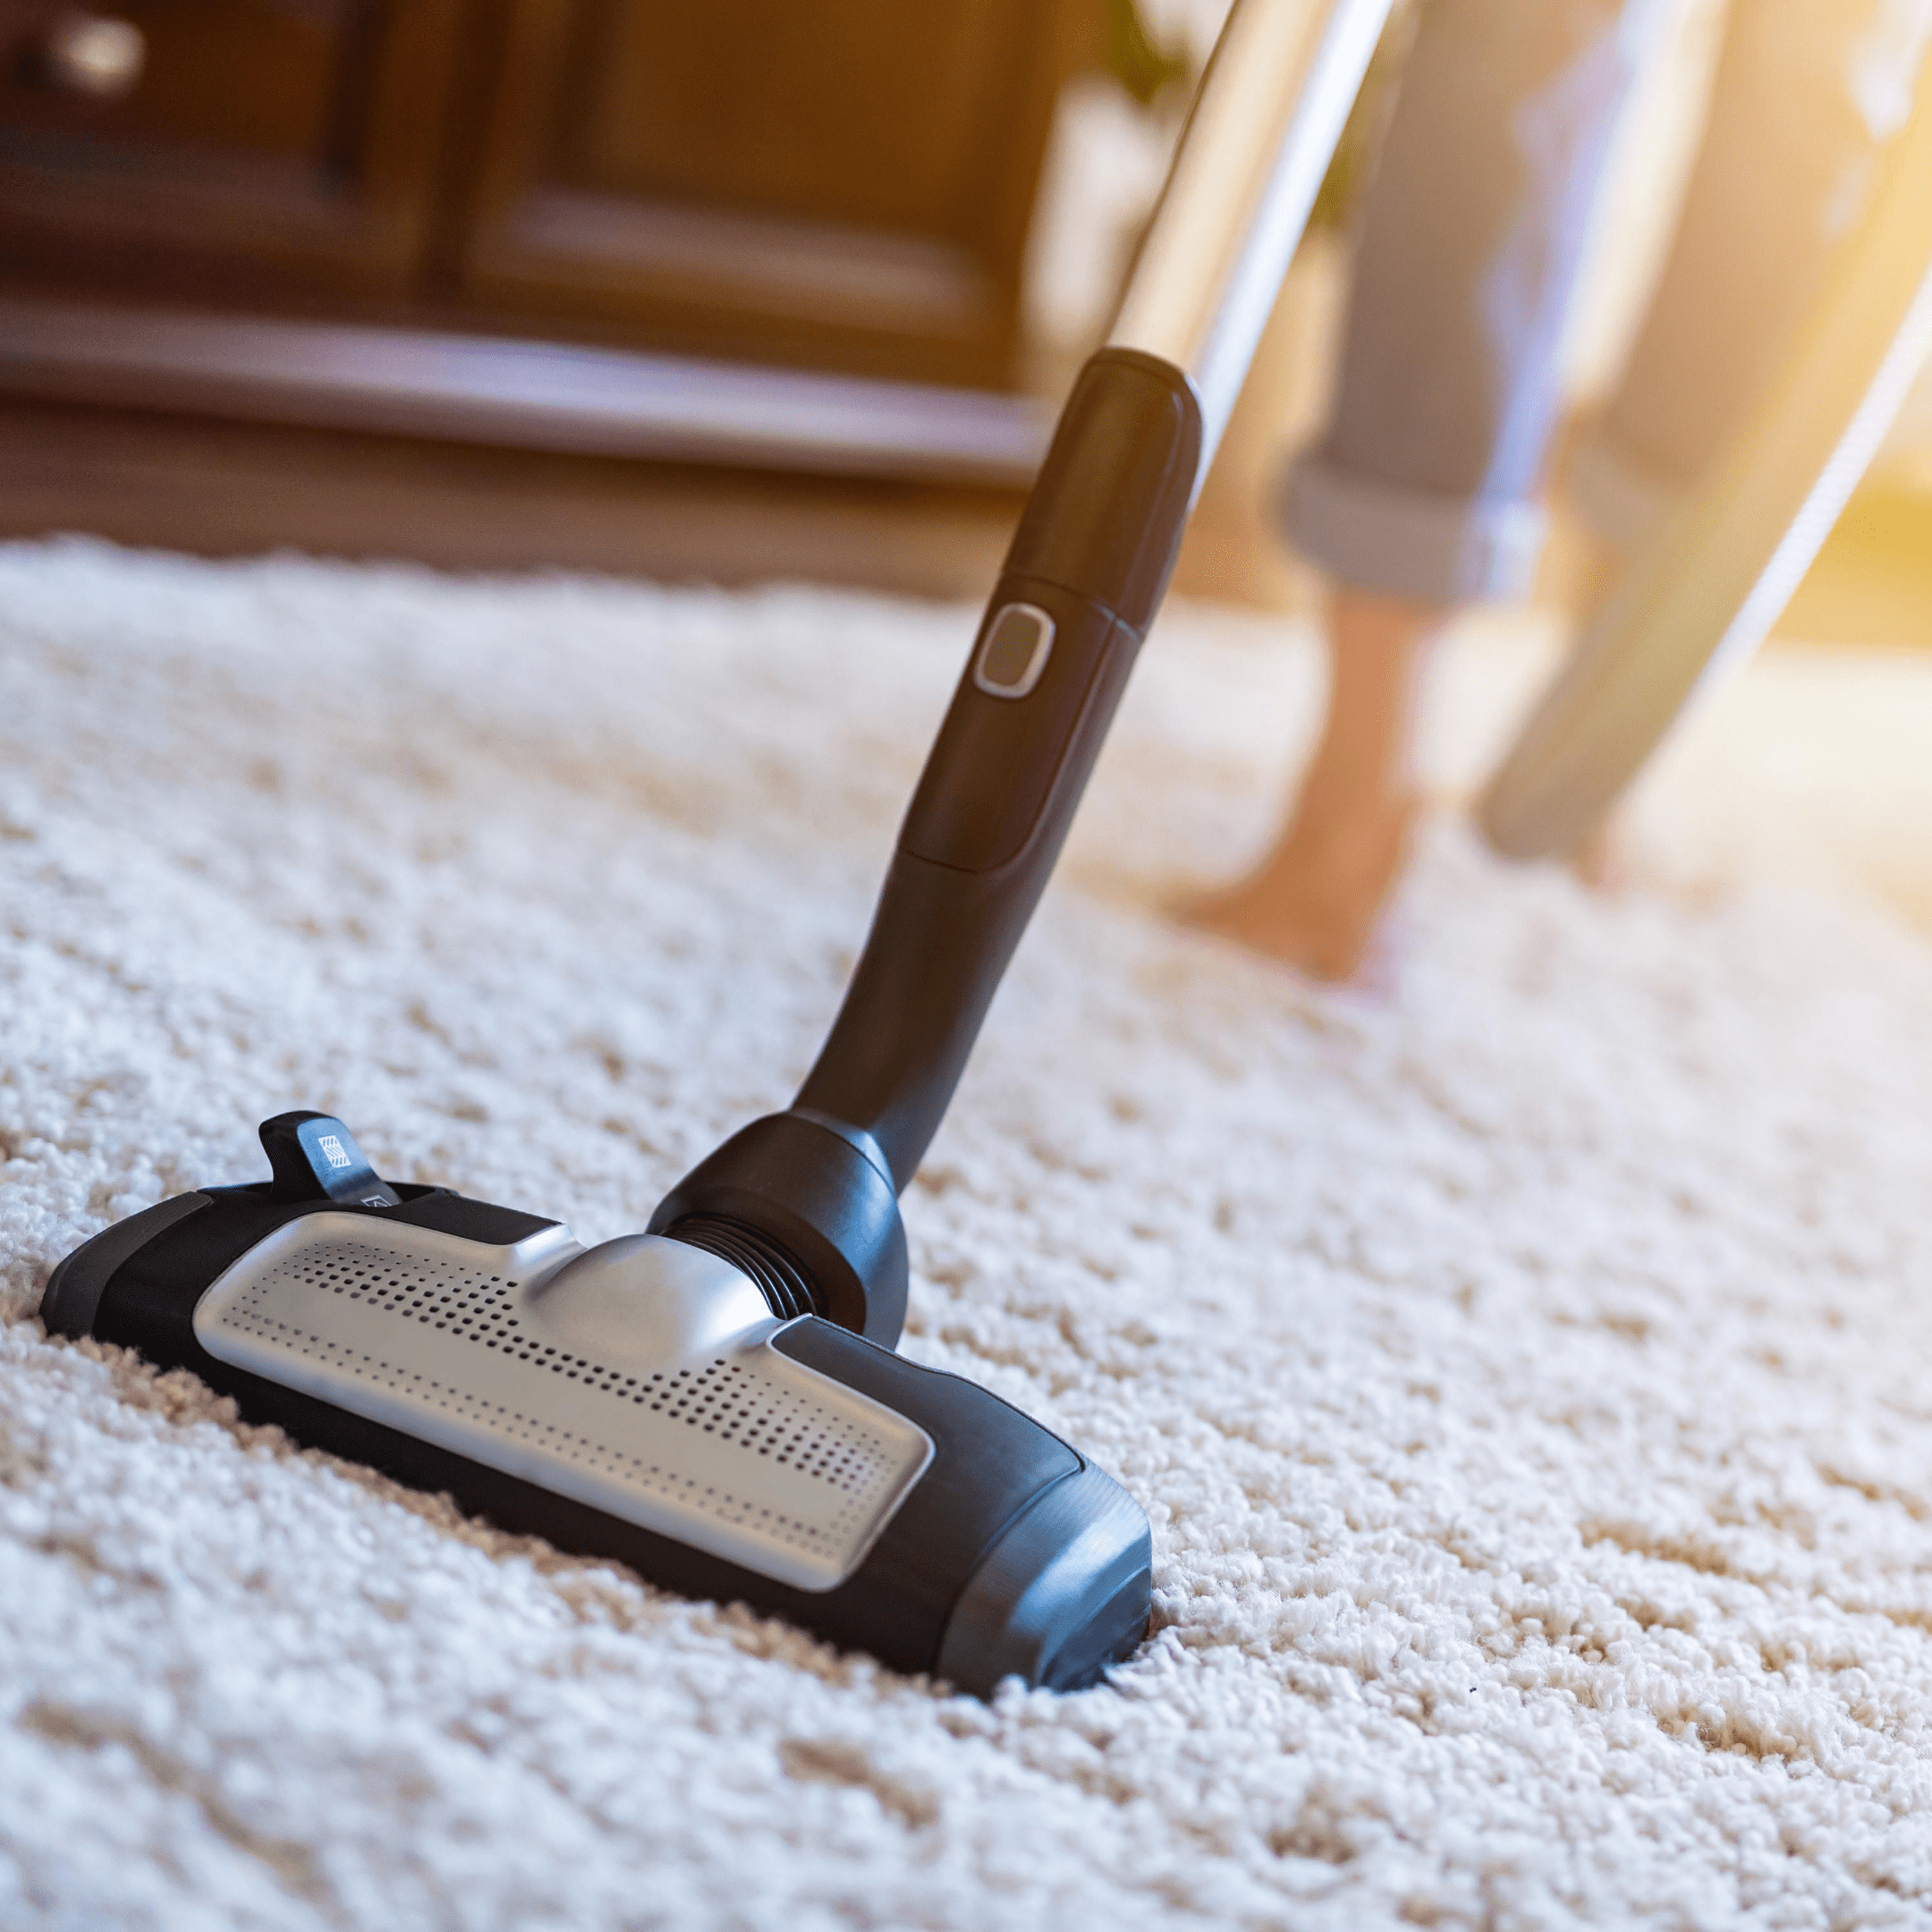 Keep surfaces and carpets clean to improve indoor air quality in home office